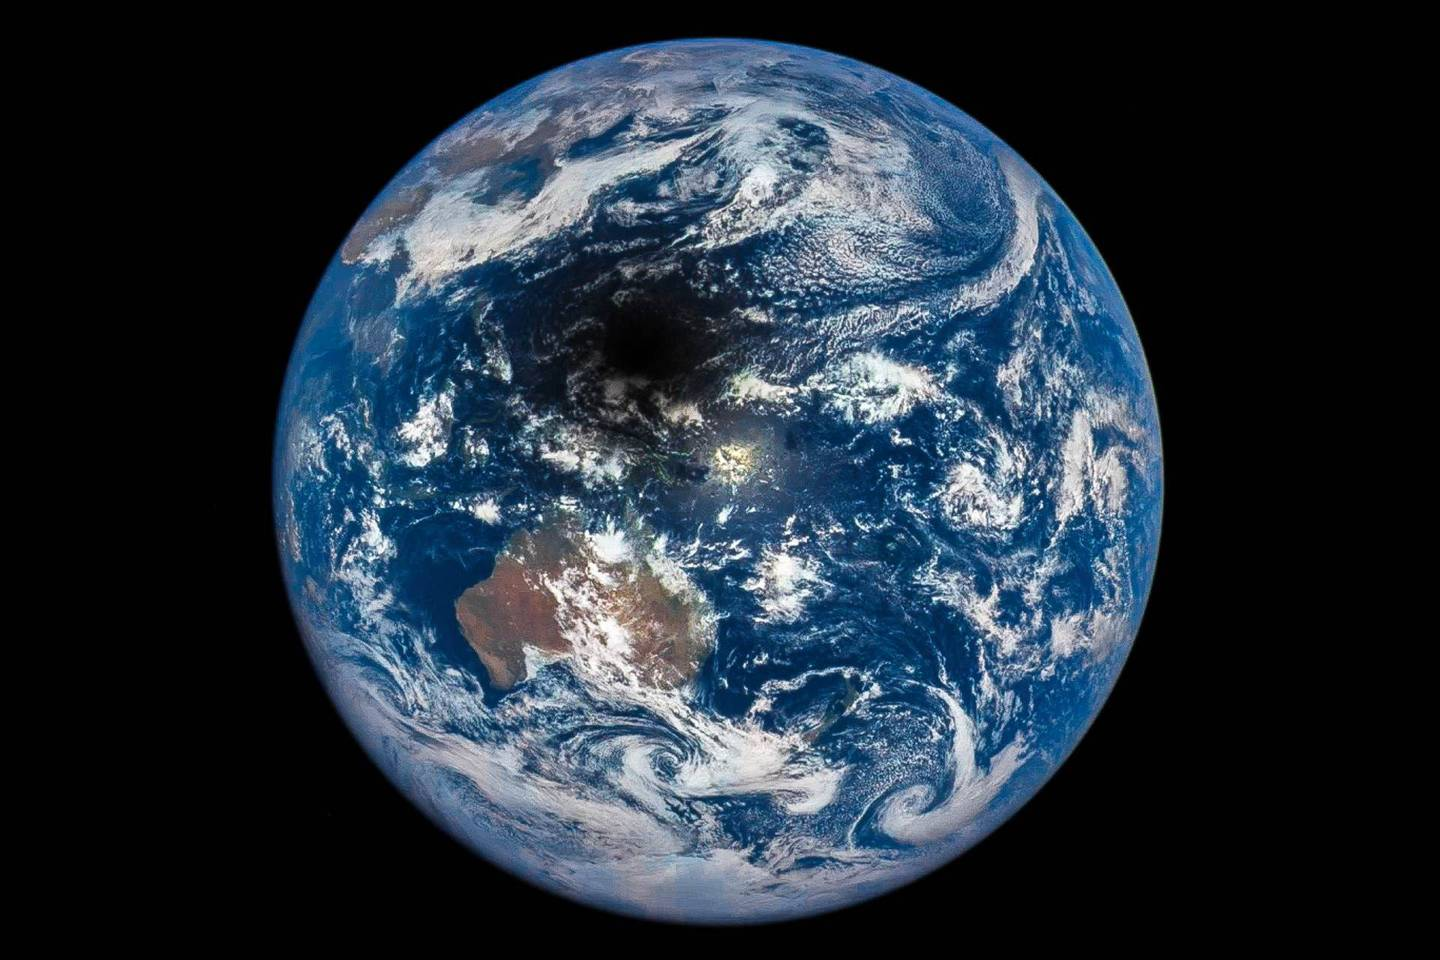 deep earth seen from space - photo #47